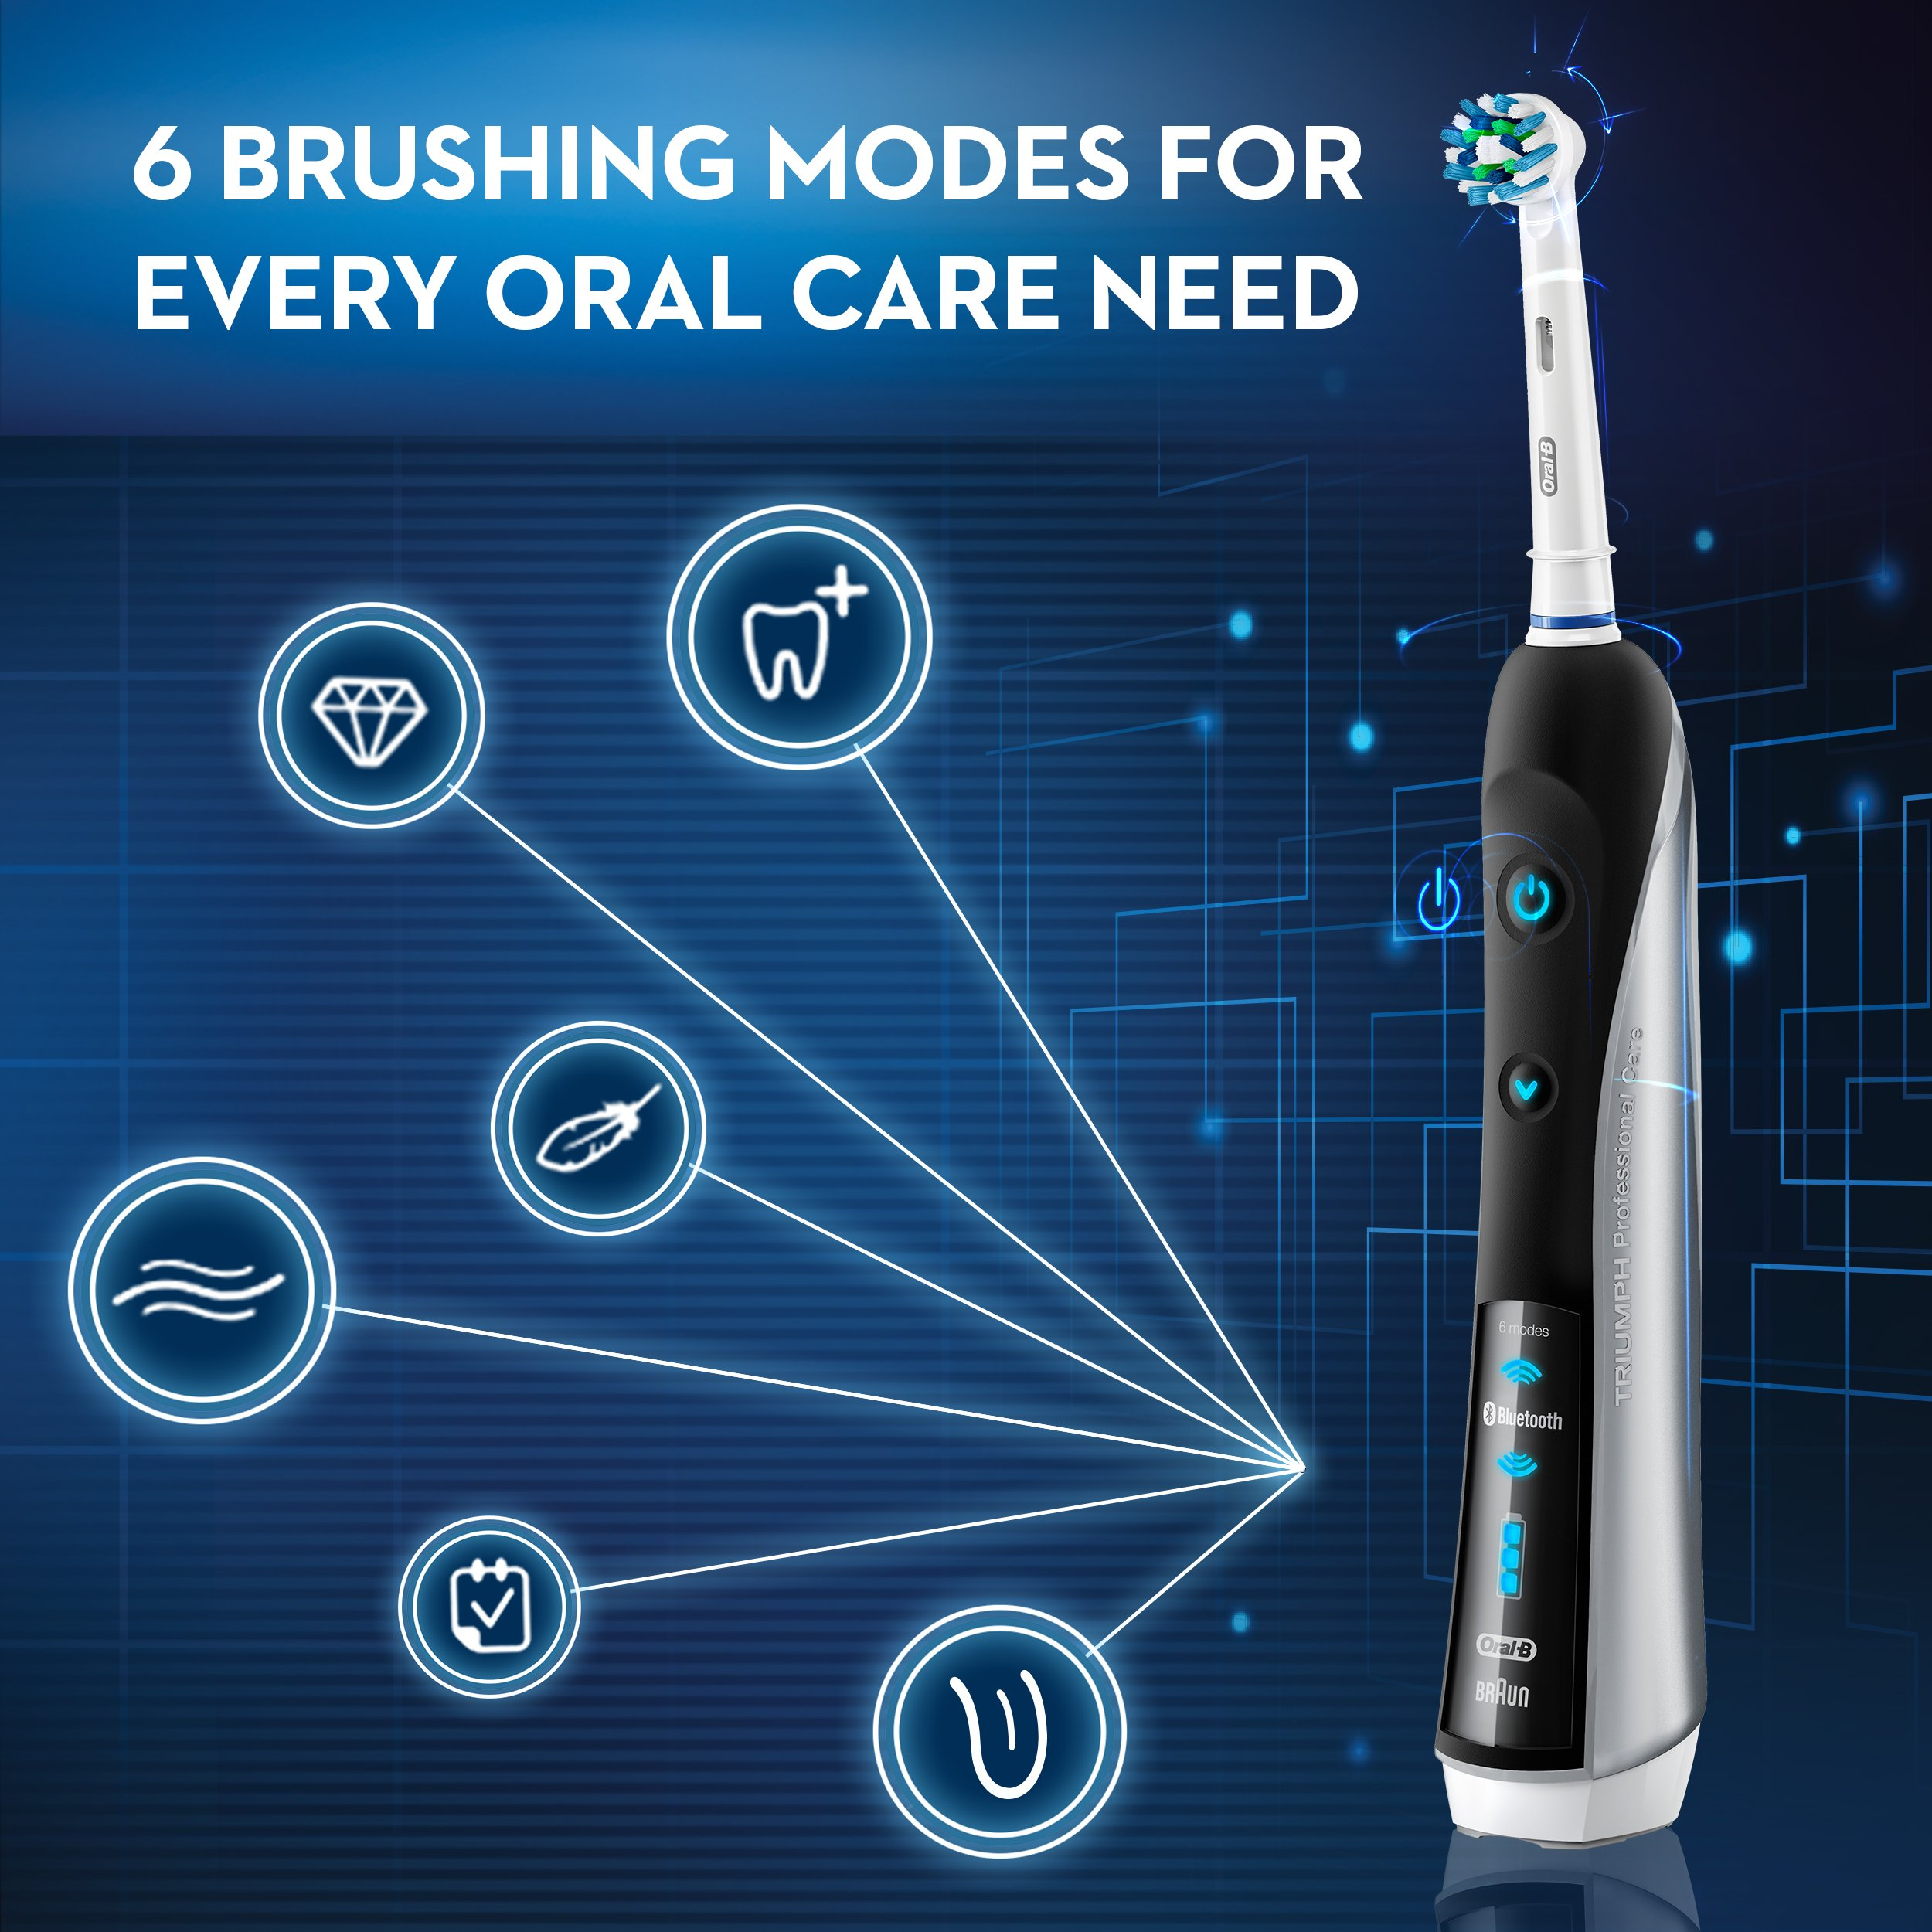 Oral-B 7000 SmartSeries Rechargeable Power Electric Toothbrush with 3 Replacement Brush Heads, Bluetooth Connectivity and Travel Case, Amazon Dash Replenishment Enabled by Oral-B (Image #5)